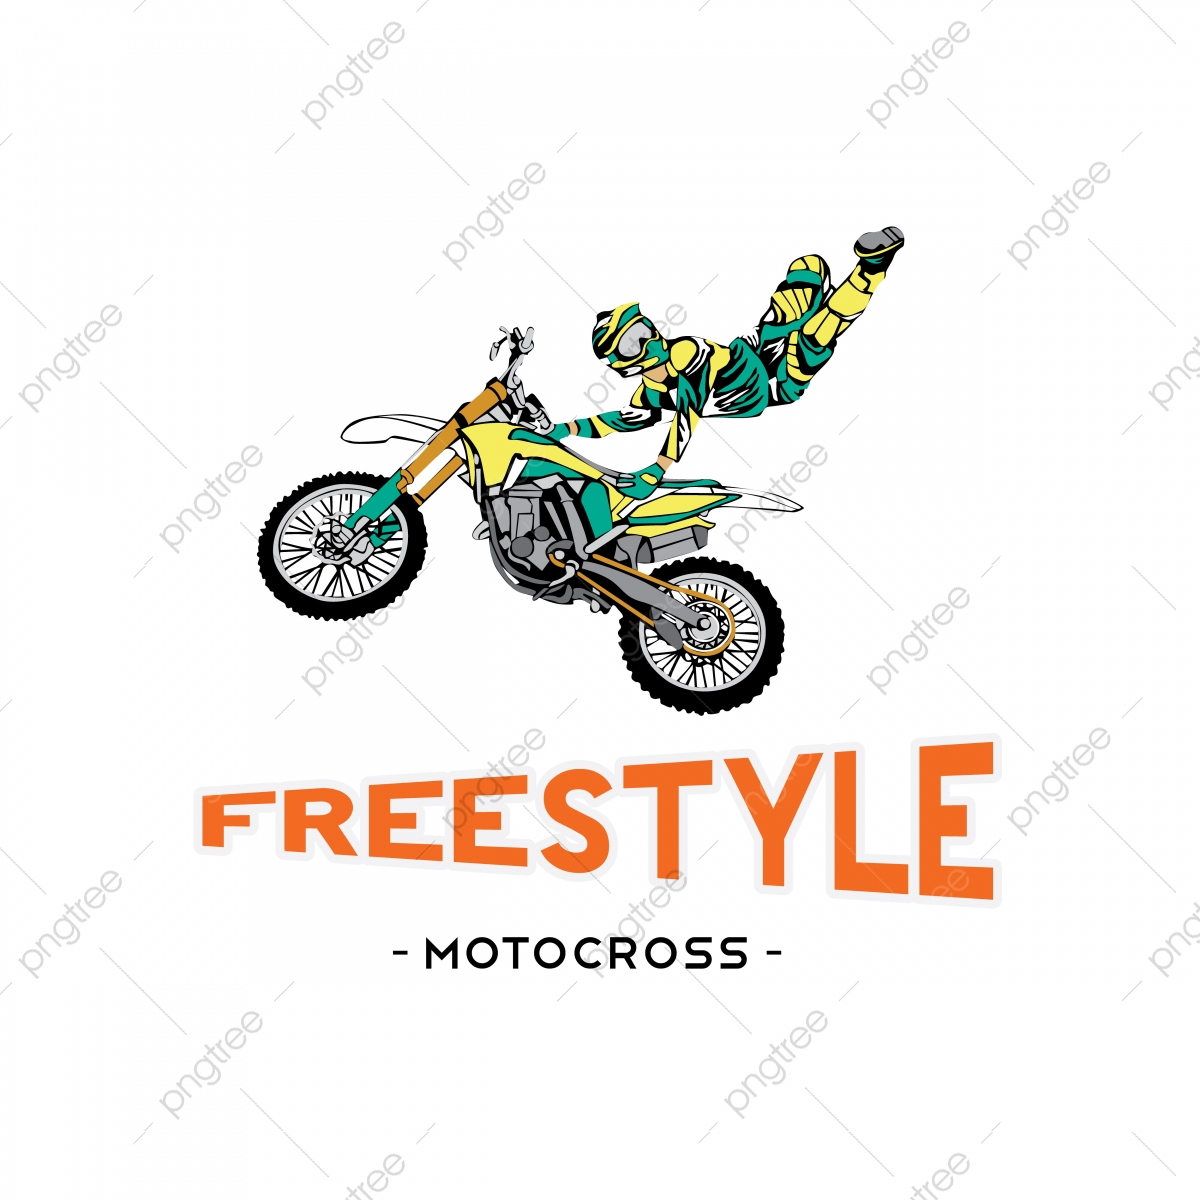 Background Material Design For Cross Country Motorcycle Freestyle Motocross Motocross Motorcycle Vector Png And Vector With Transparent Background For Free Download